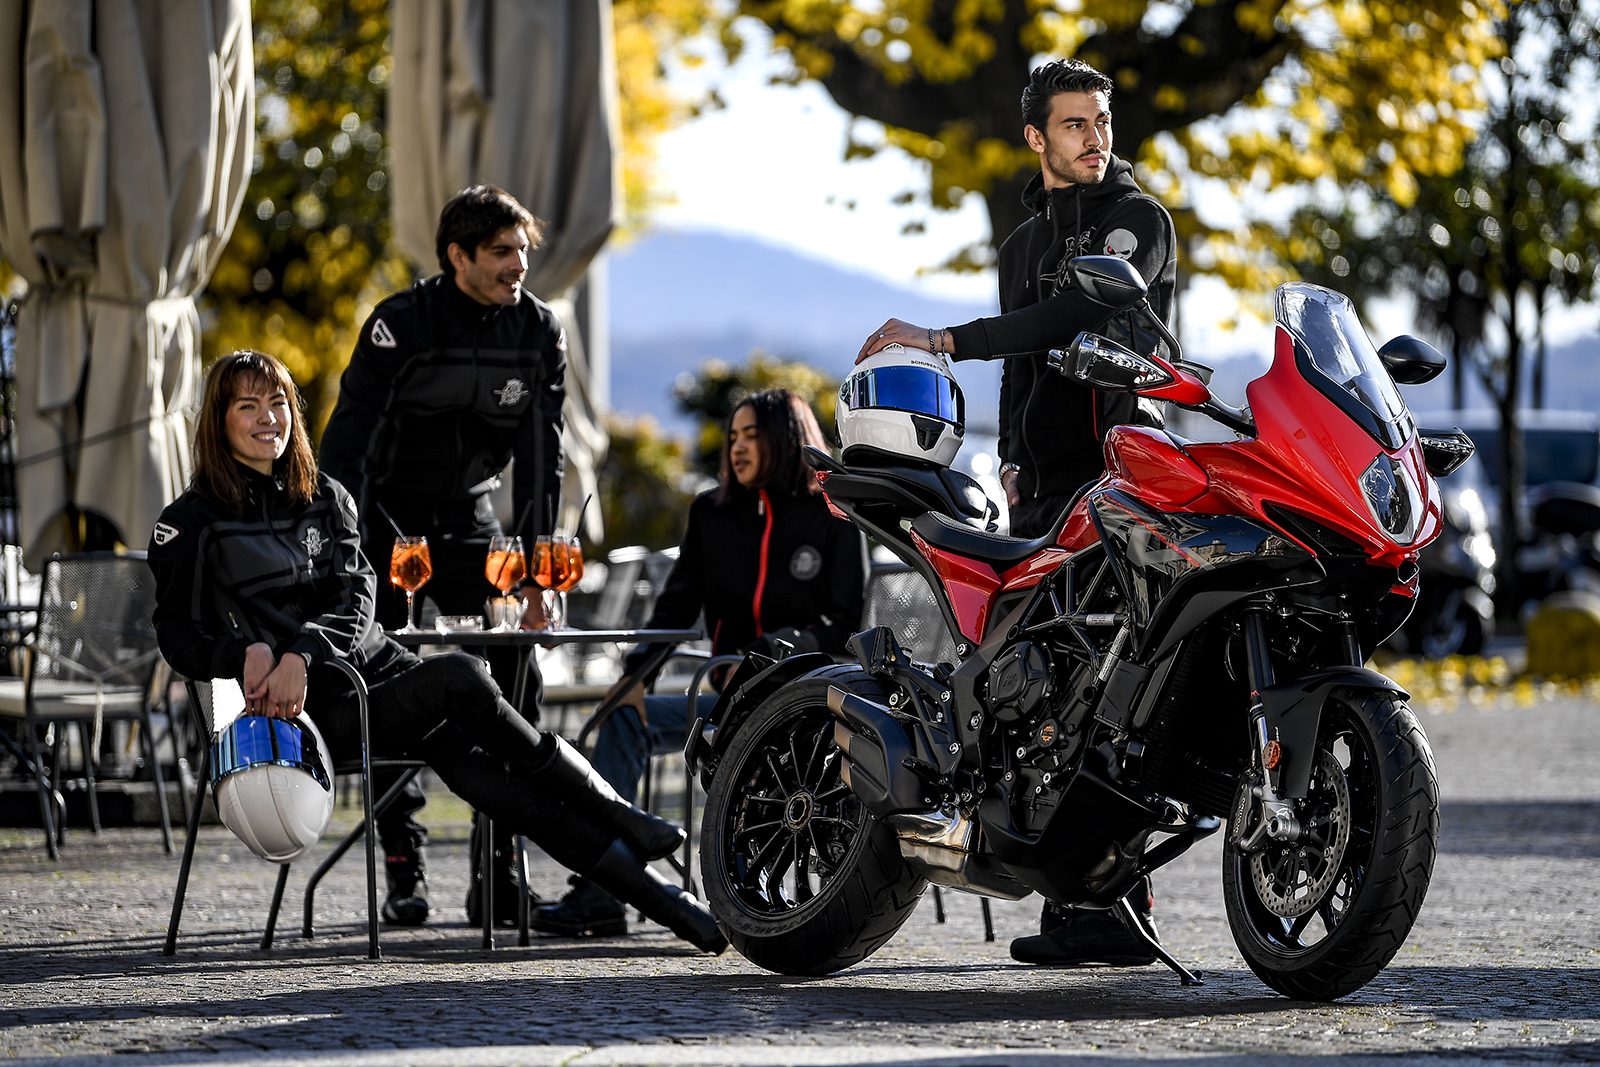 four riders drinking aperol spritz in Italy, with a red turismo veloce on its side stand, and apart of the new mv agusta rosso range